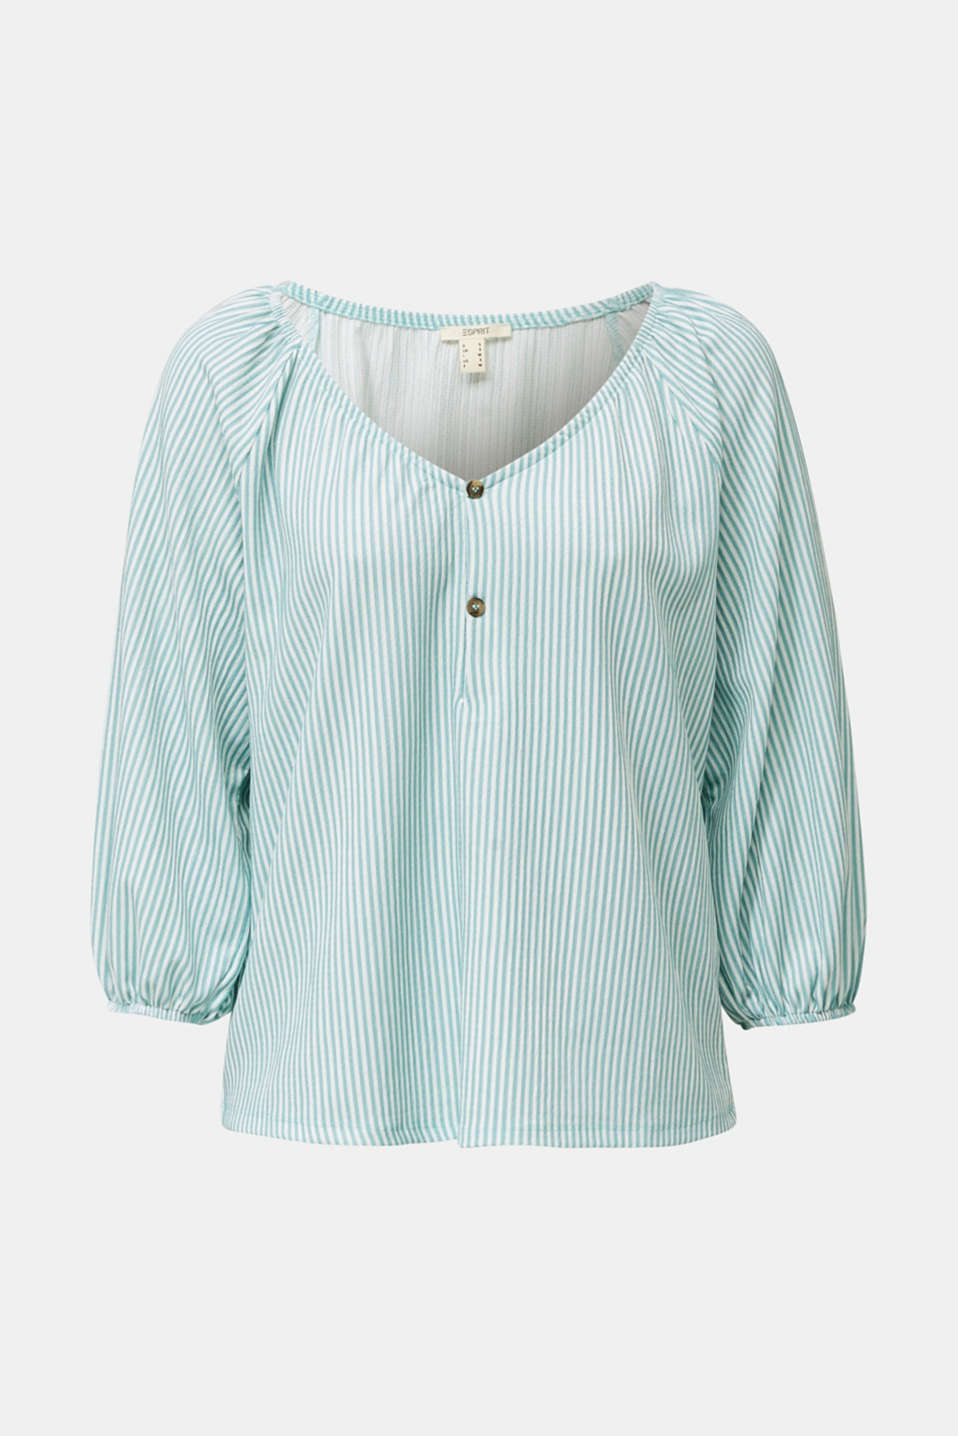 Striped blouse top, recycled, LIGHT AQUA GREEN, detail image number 5